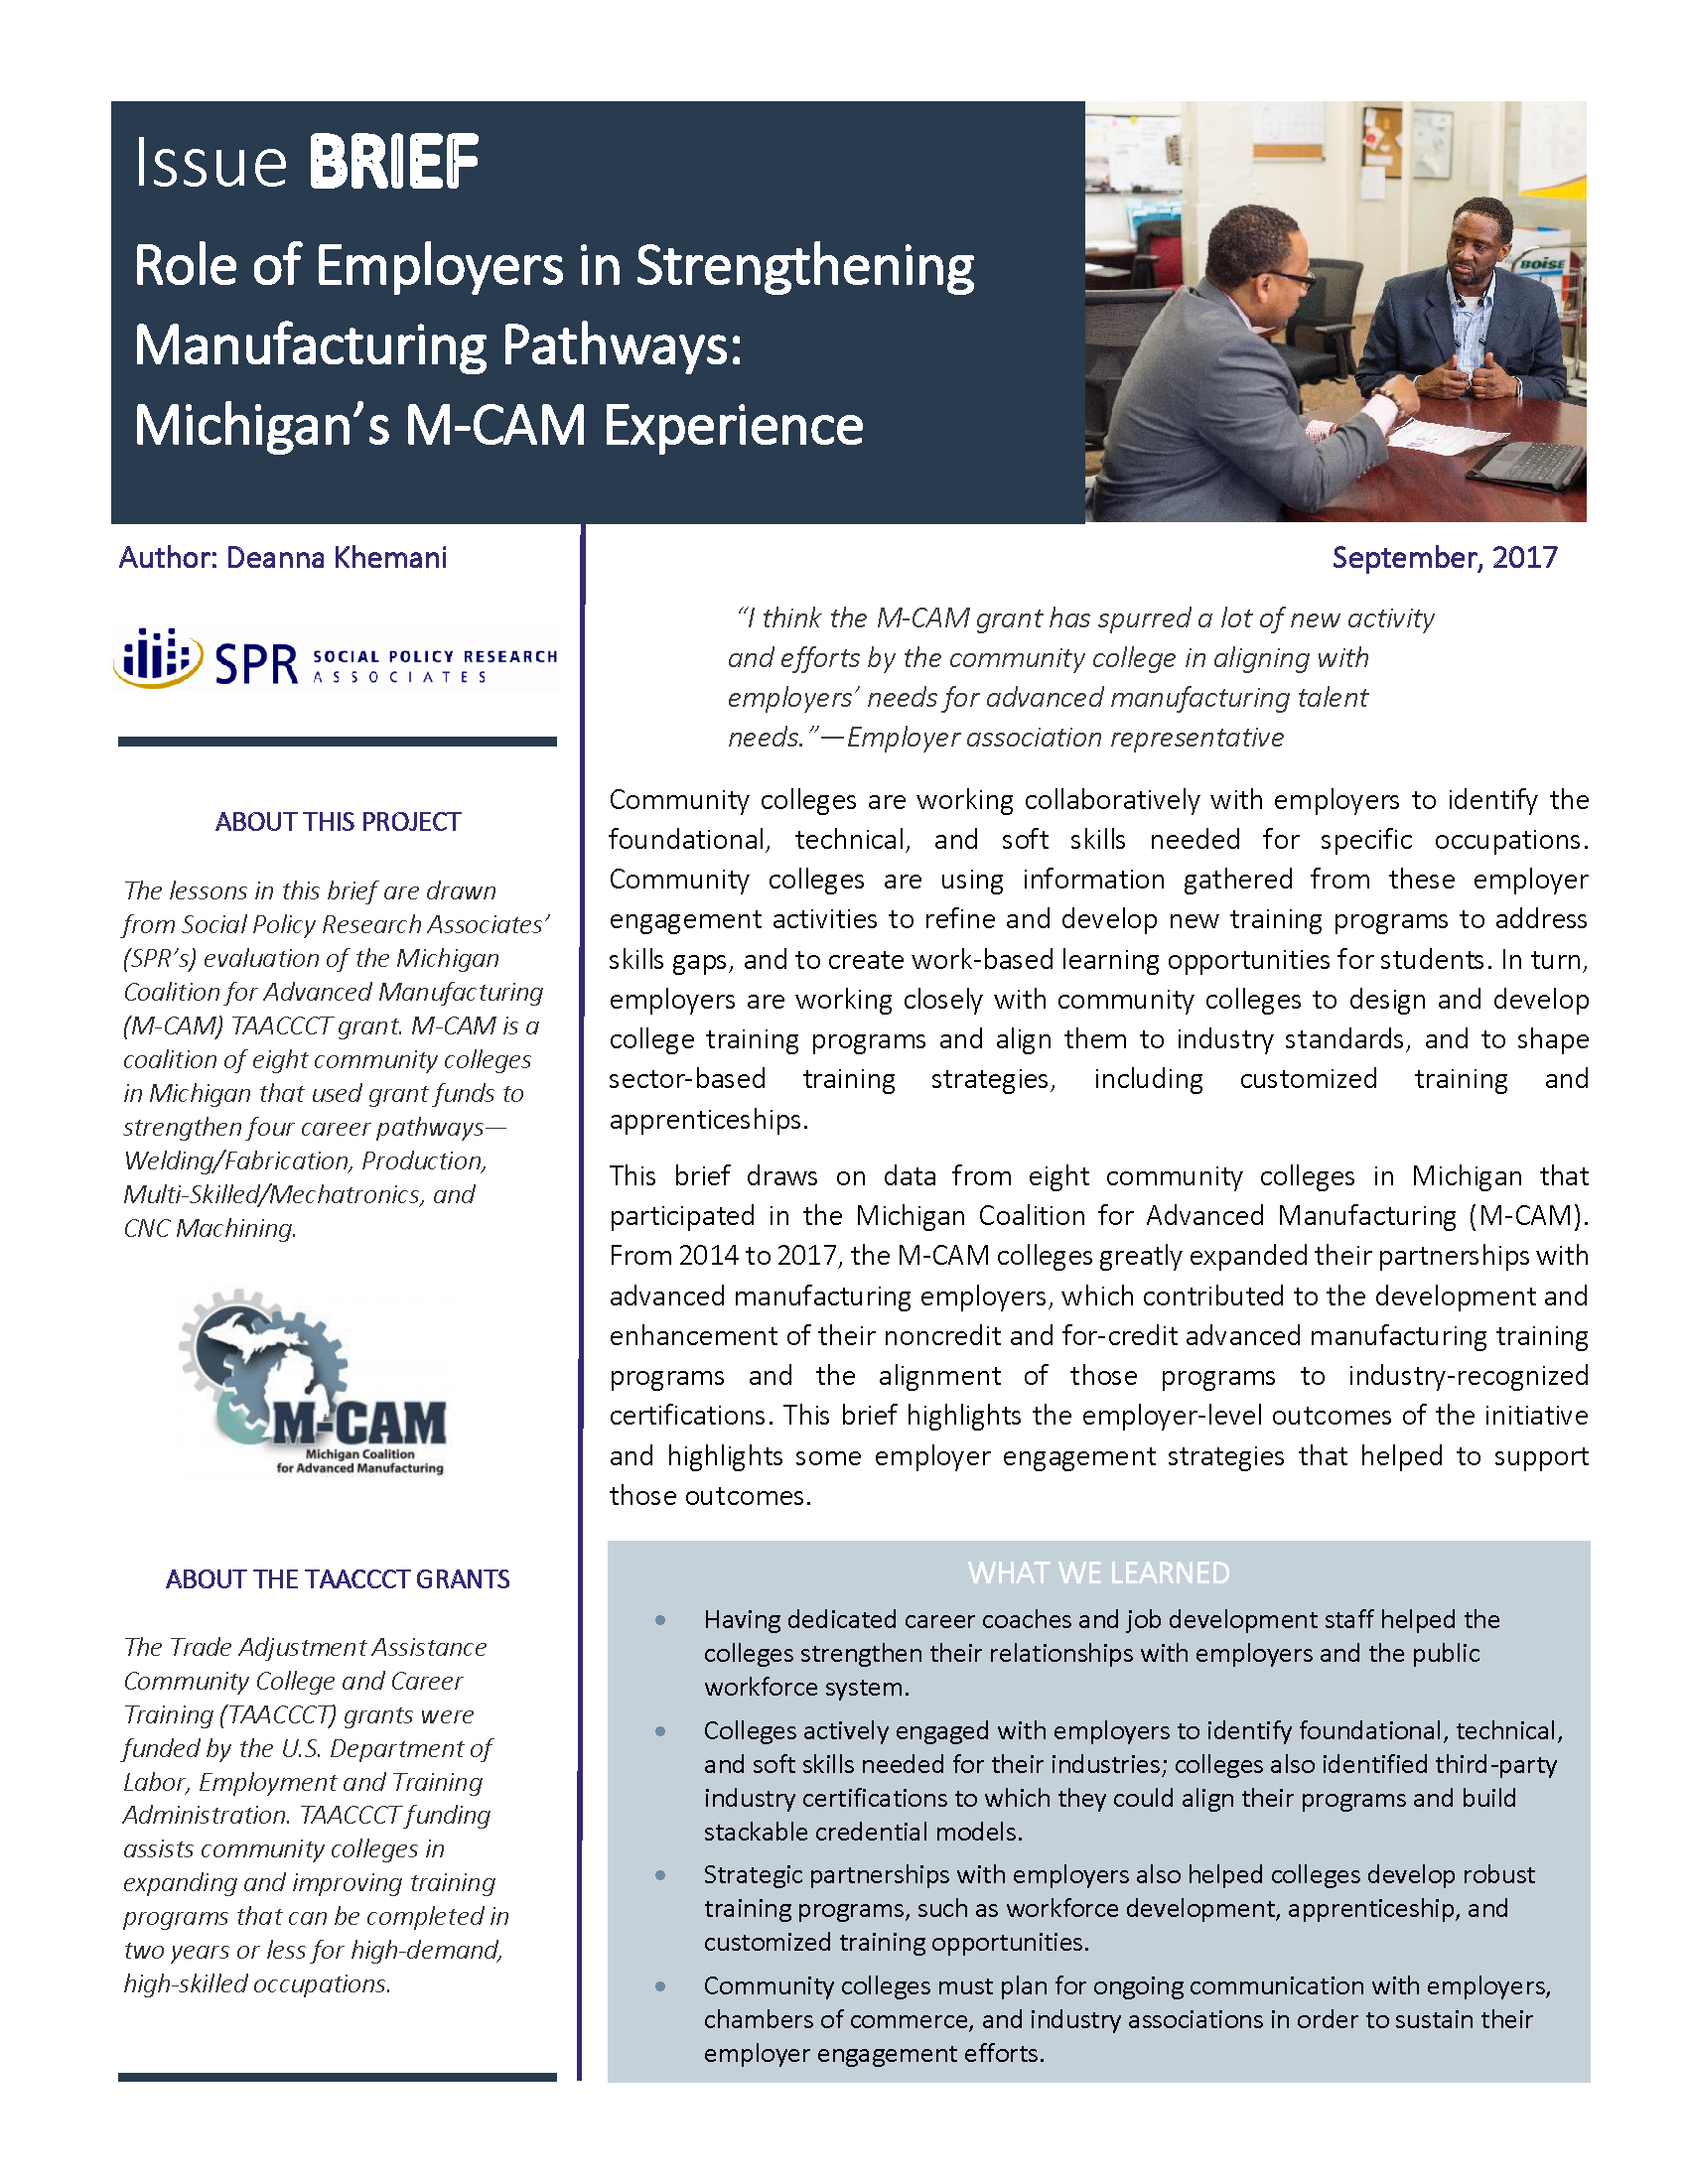 Cover of Role of Employers in Strengthening Manufacturing Pathways: Michigan's M-CAM Experience Brief